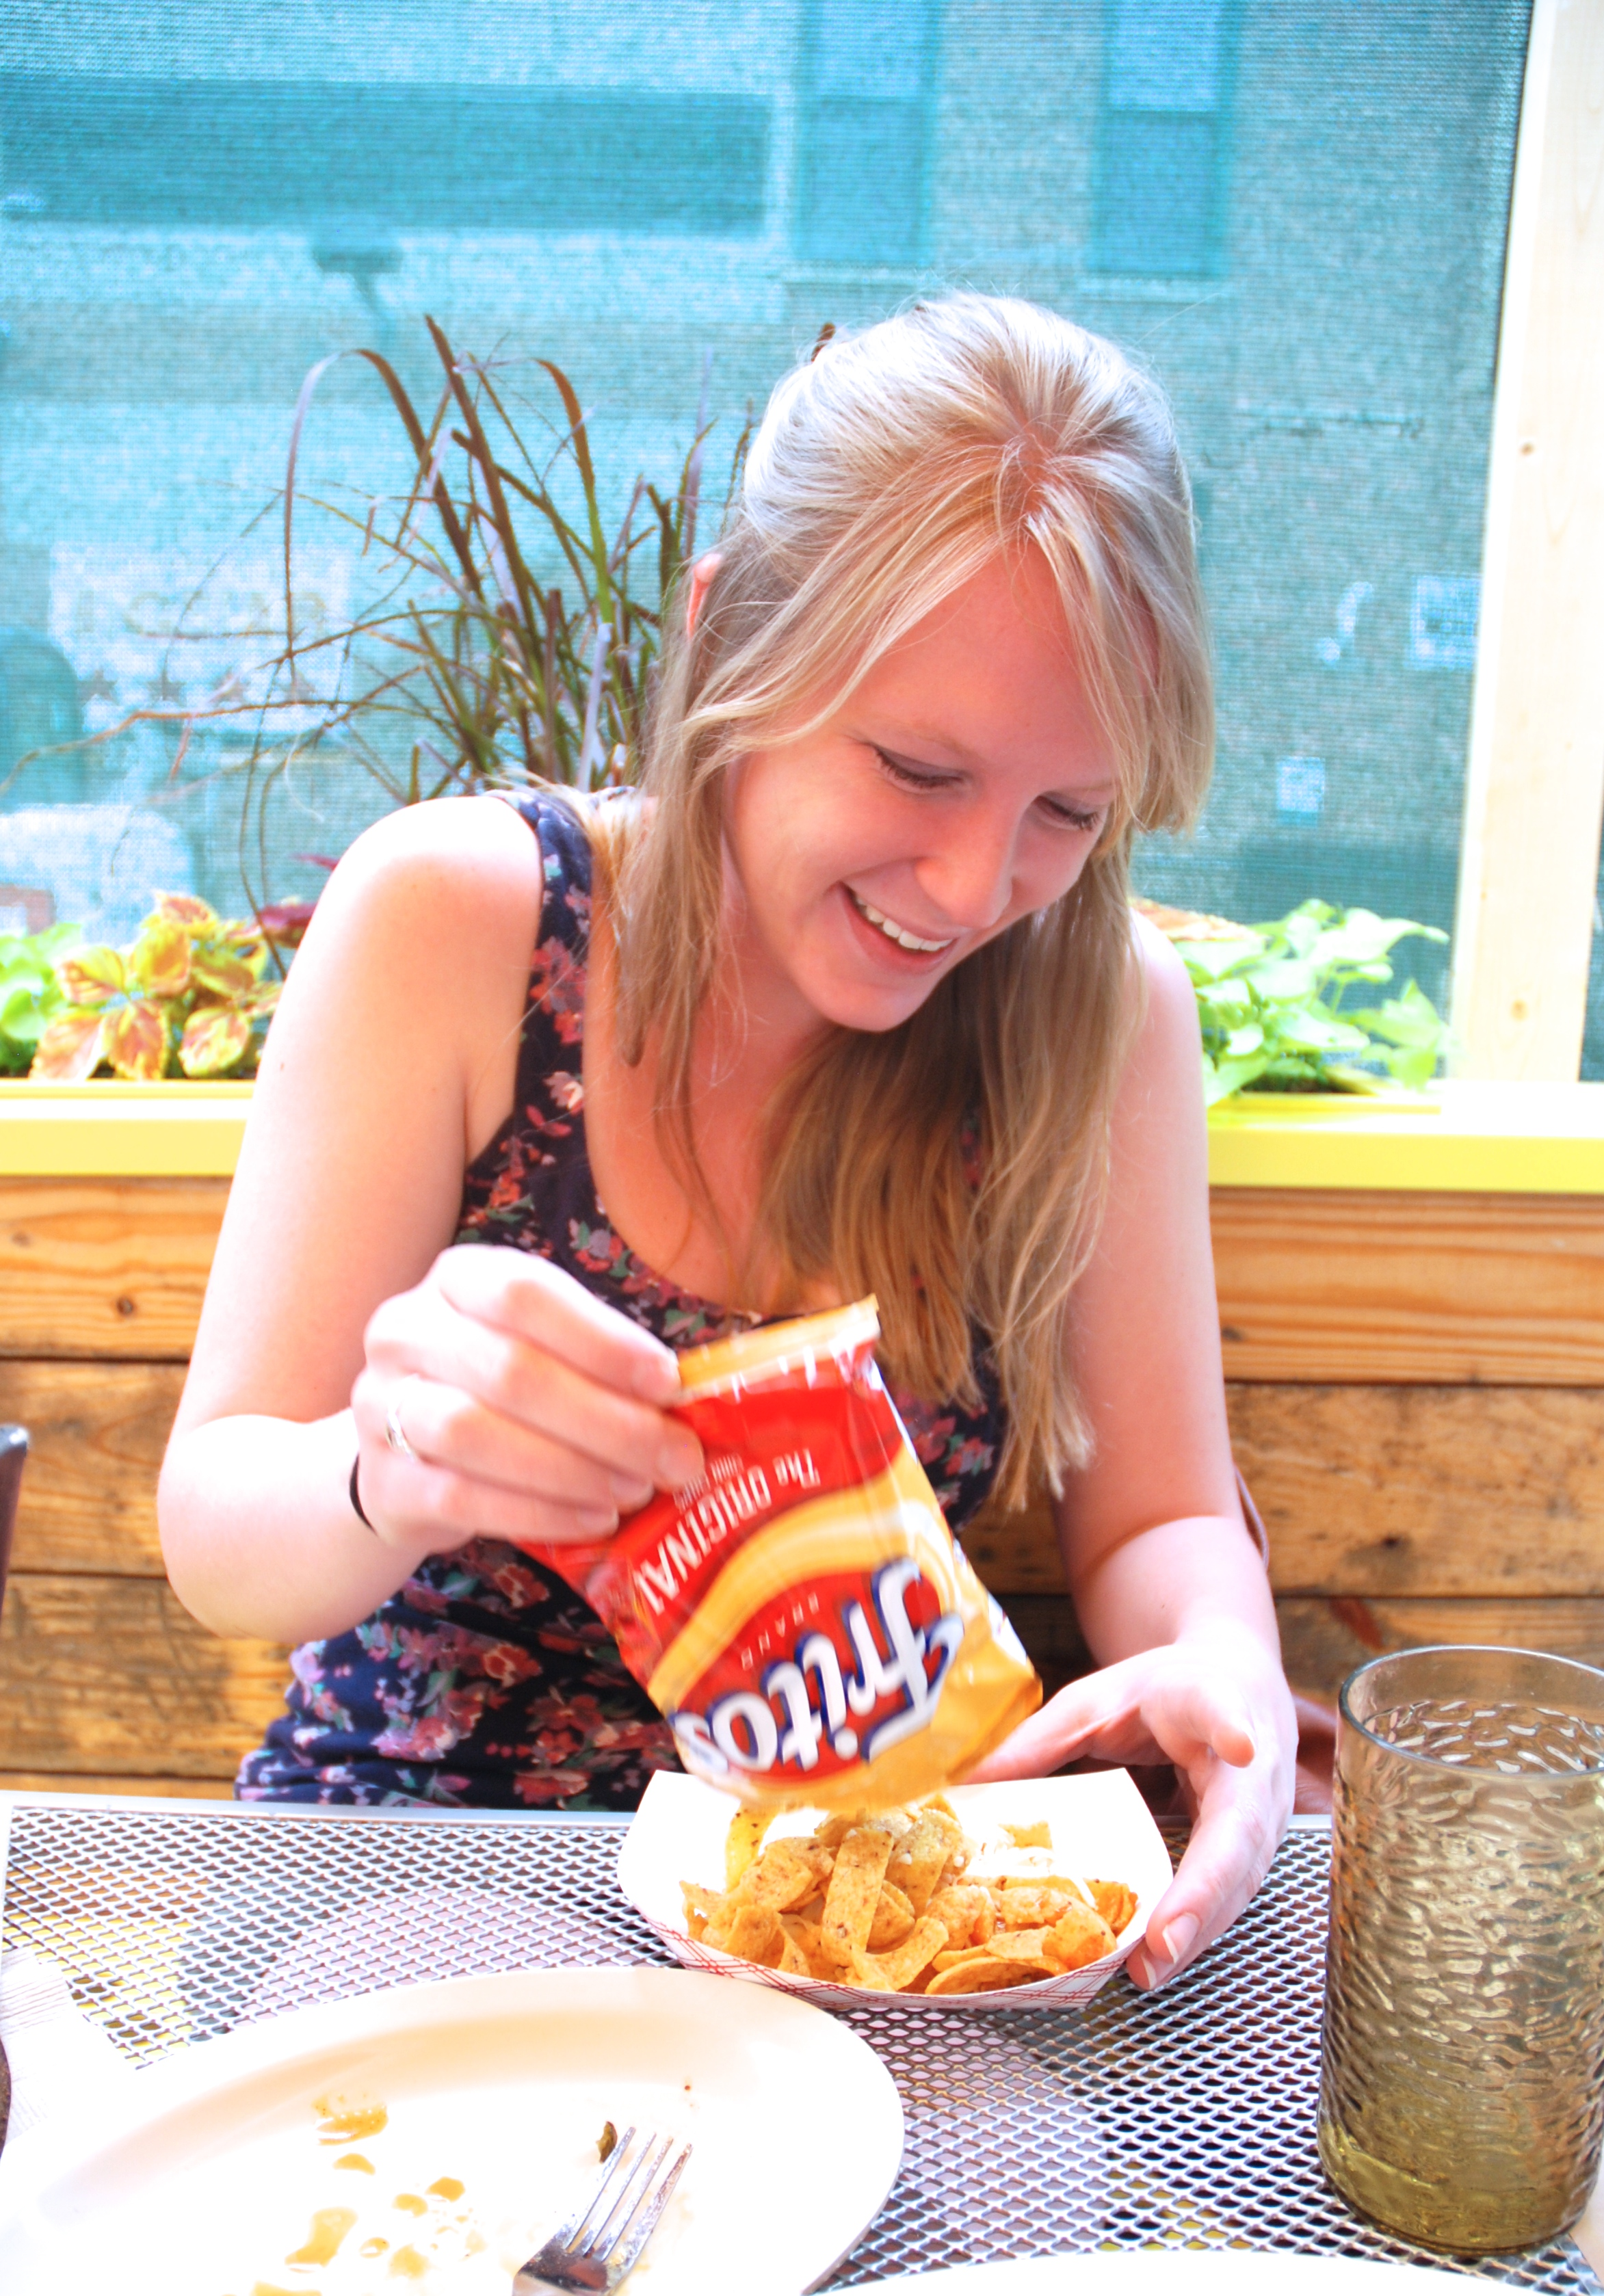 The Walking Taco - served in a Frito bag, staying true to its traditional convenience!